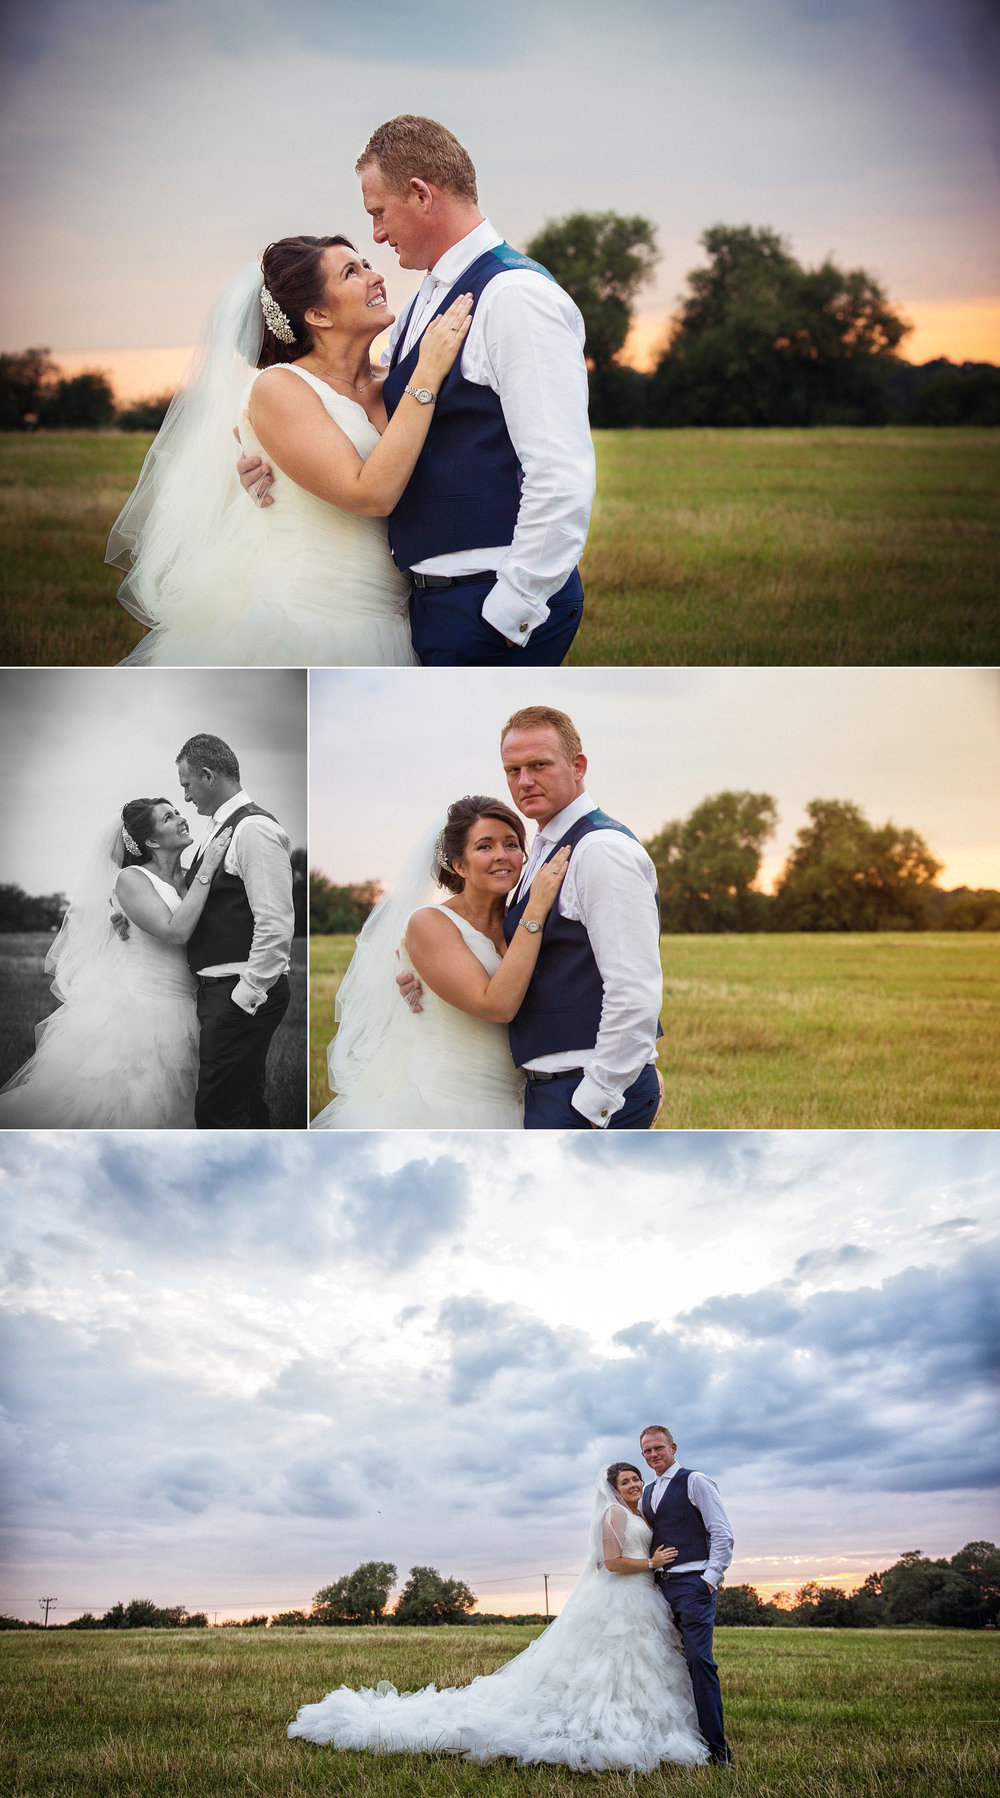 Wedding at Old Brook Barn - Portraits at Sunset